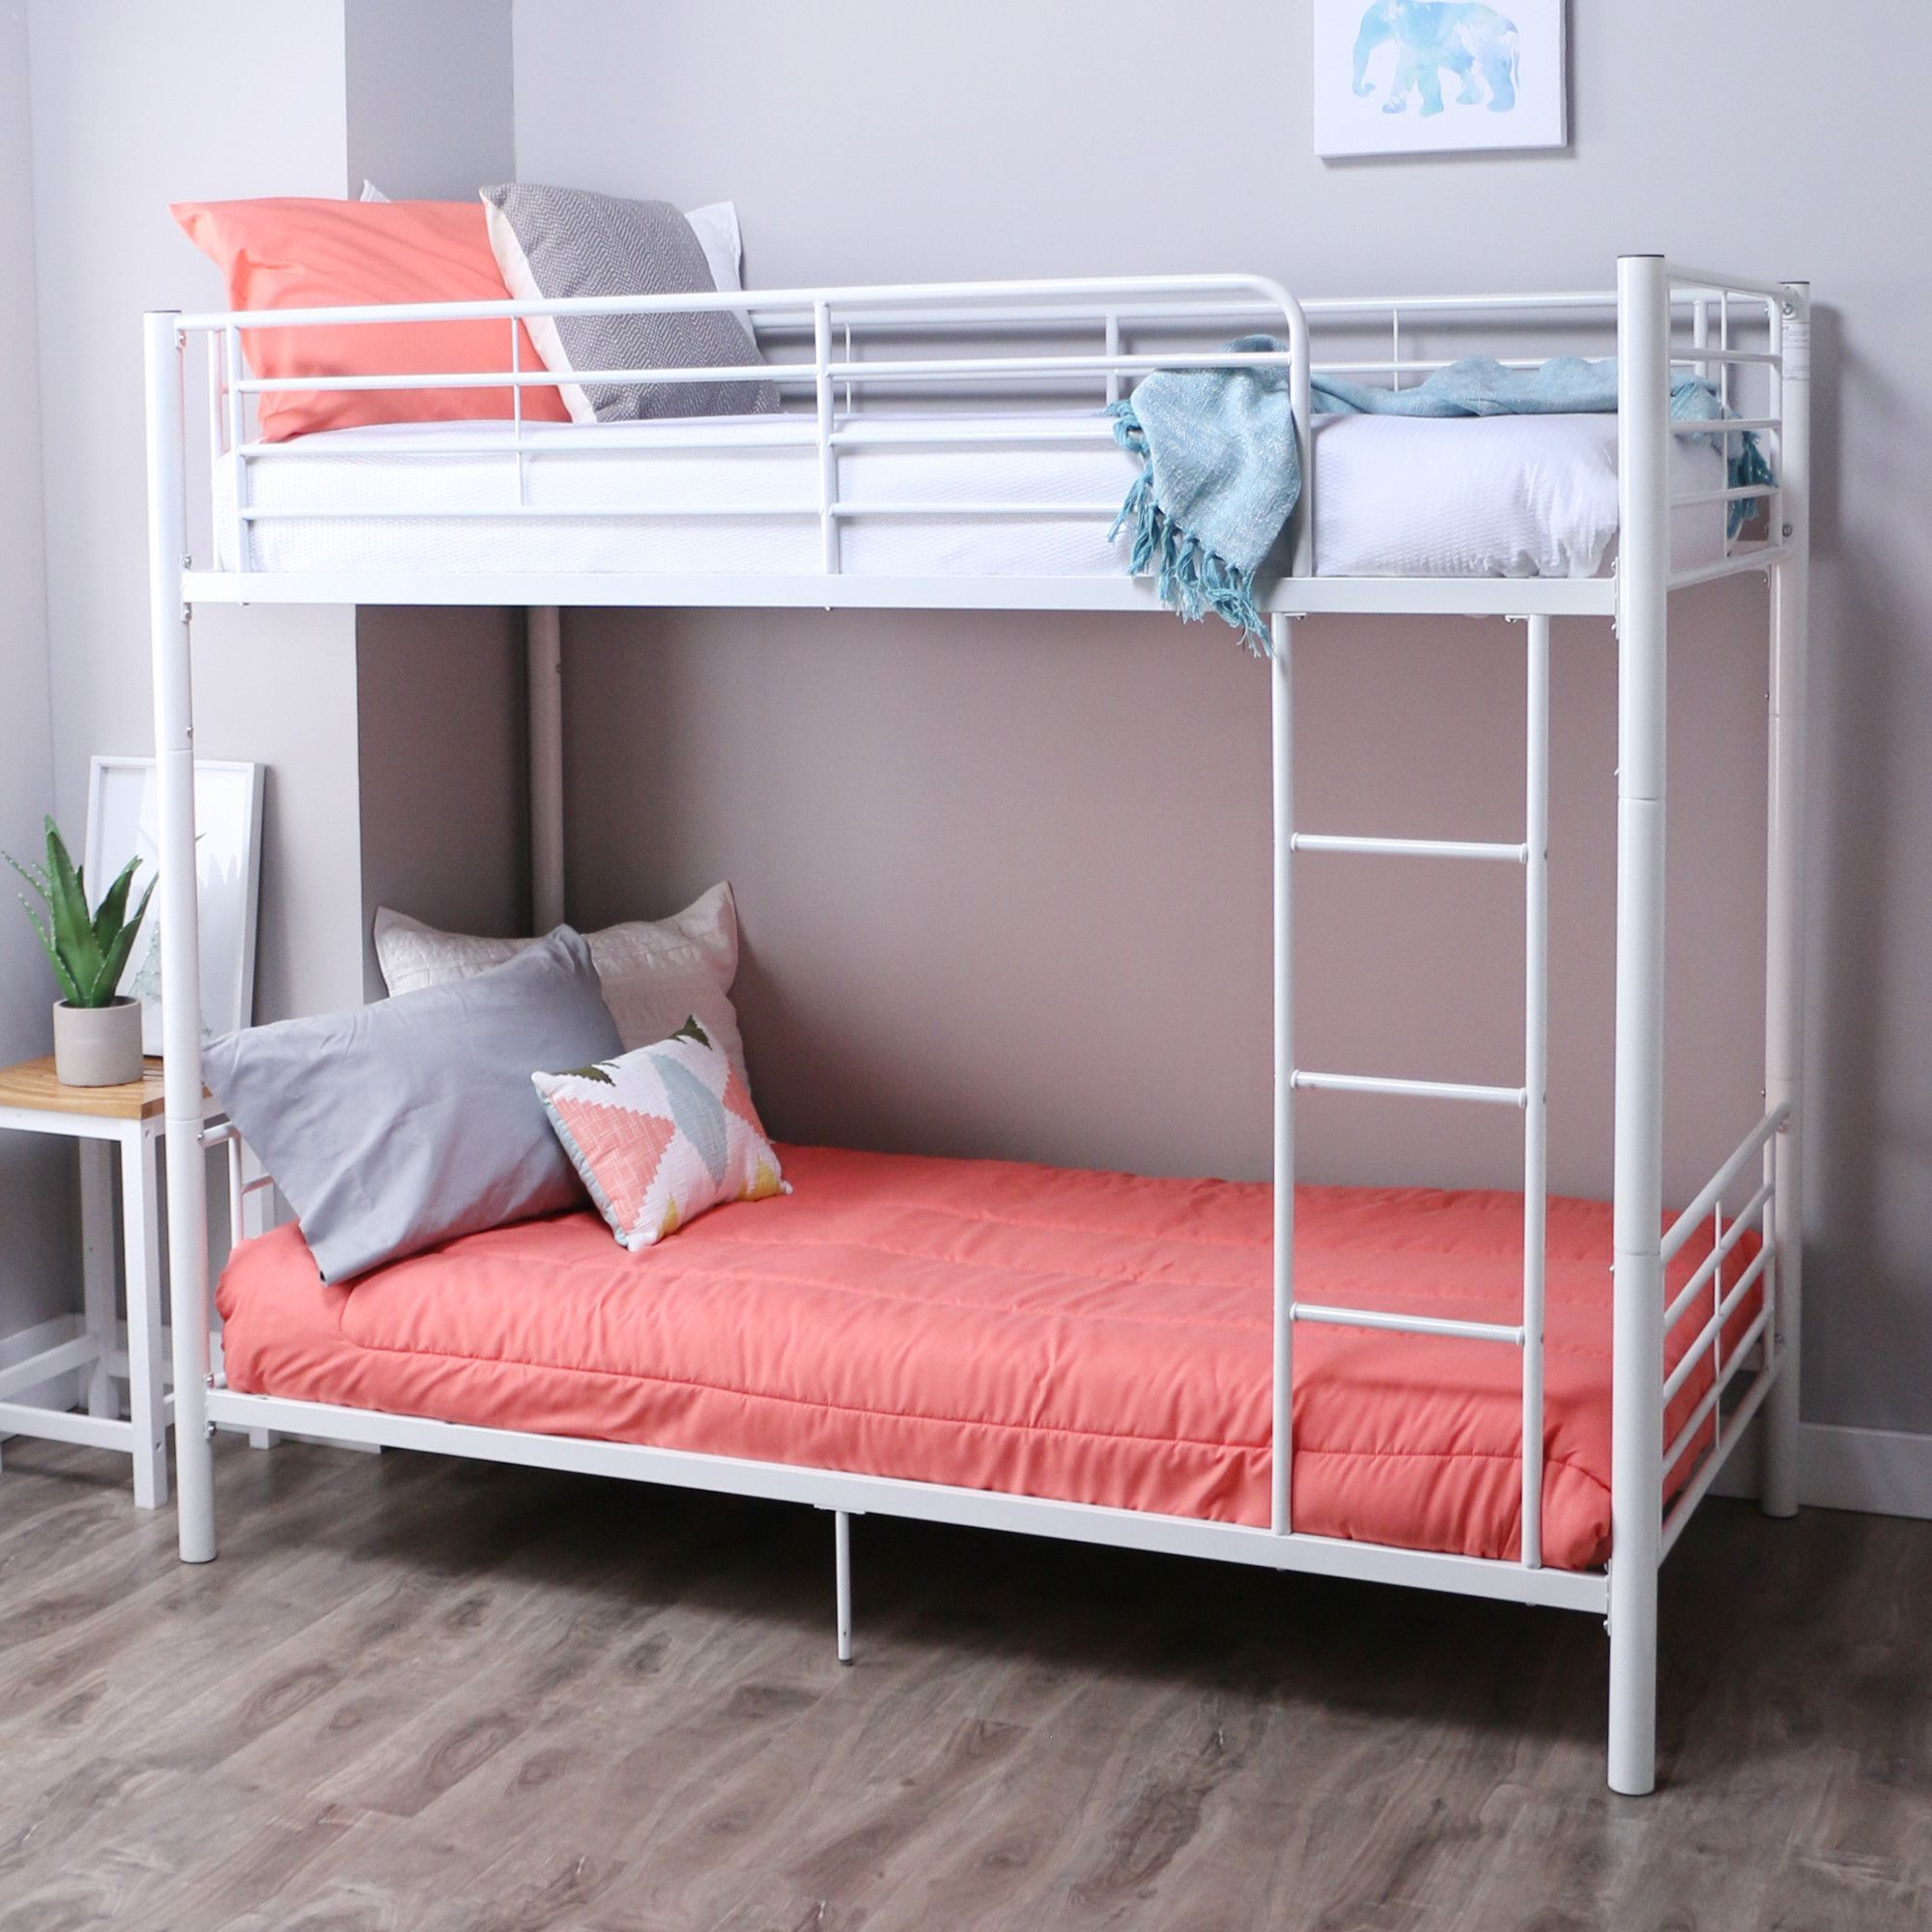 Brady Twin Bunk Bed Twin bunk beds, Bunk beds, Bunk bed